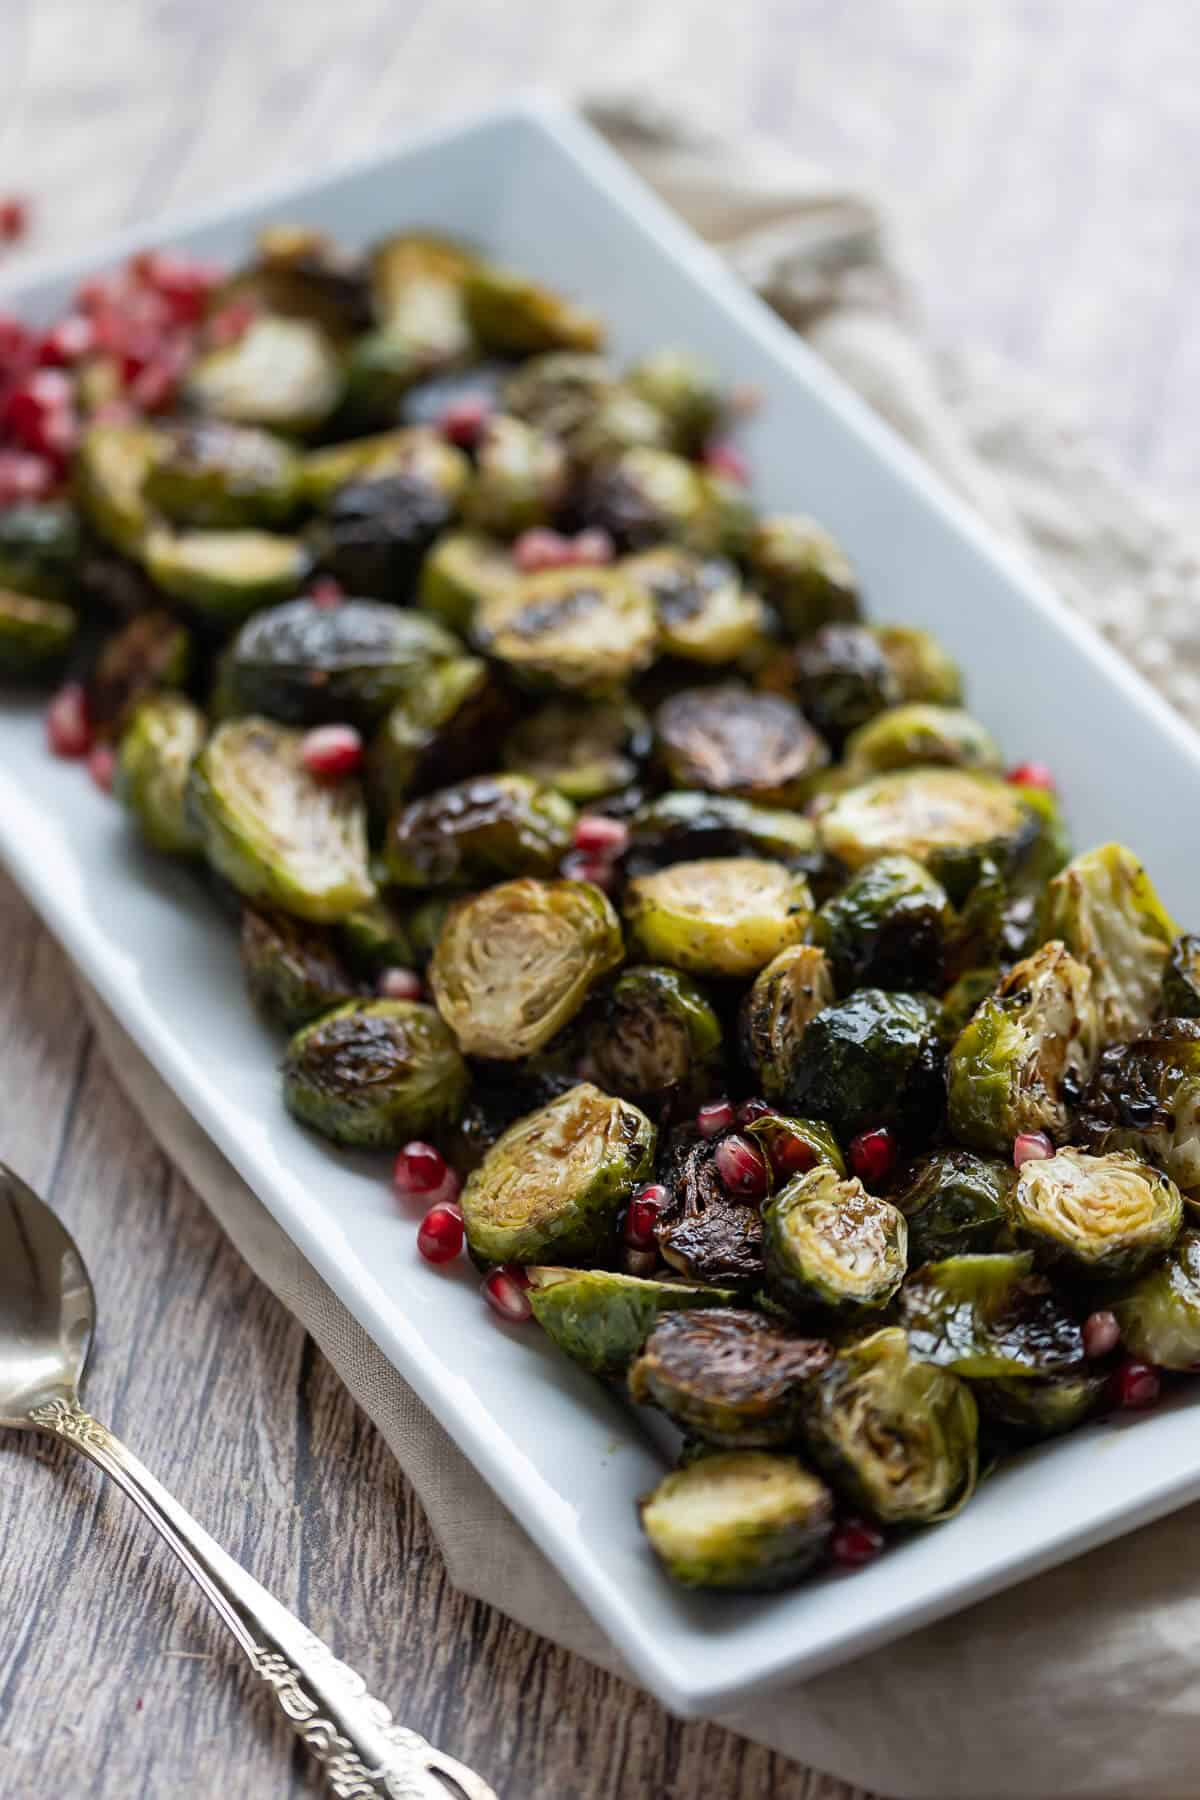 platter of roasted brussels sprouts garnished with pomegranate seeds